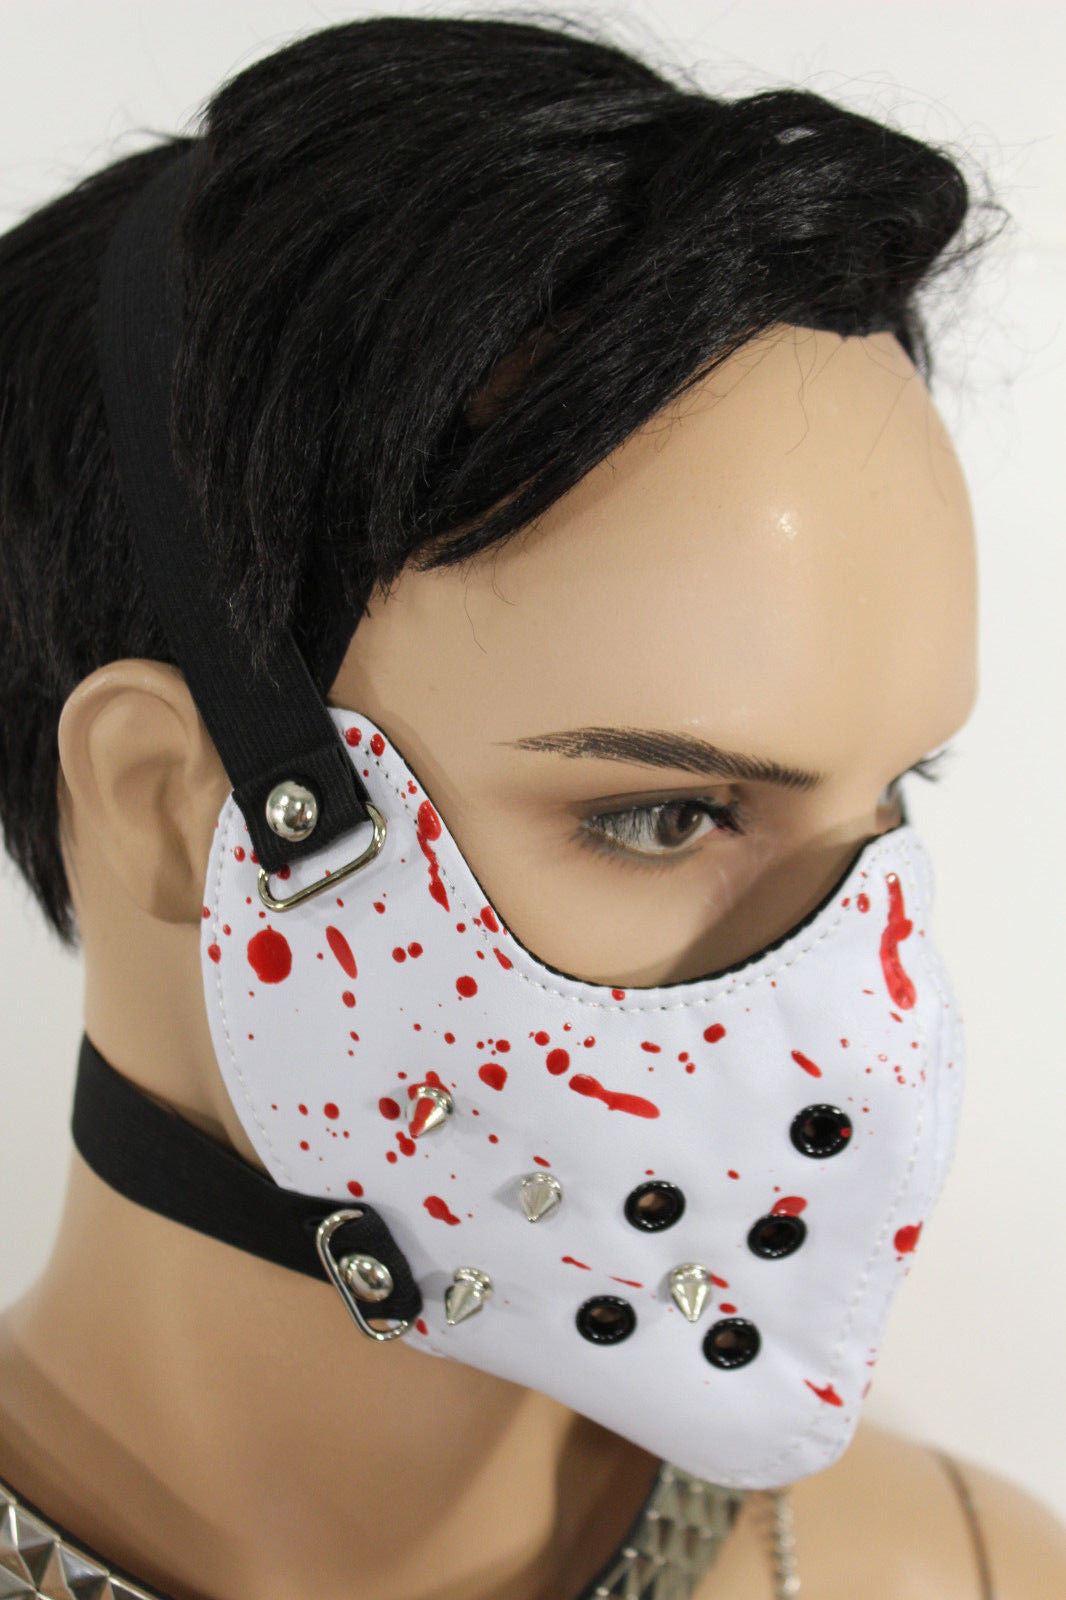 White Faux Leather Hannibal Blood Spikes Mouth Muzzle S&M Face ...